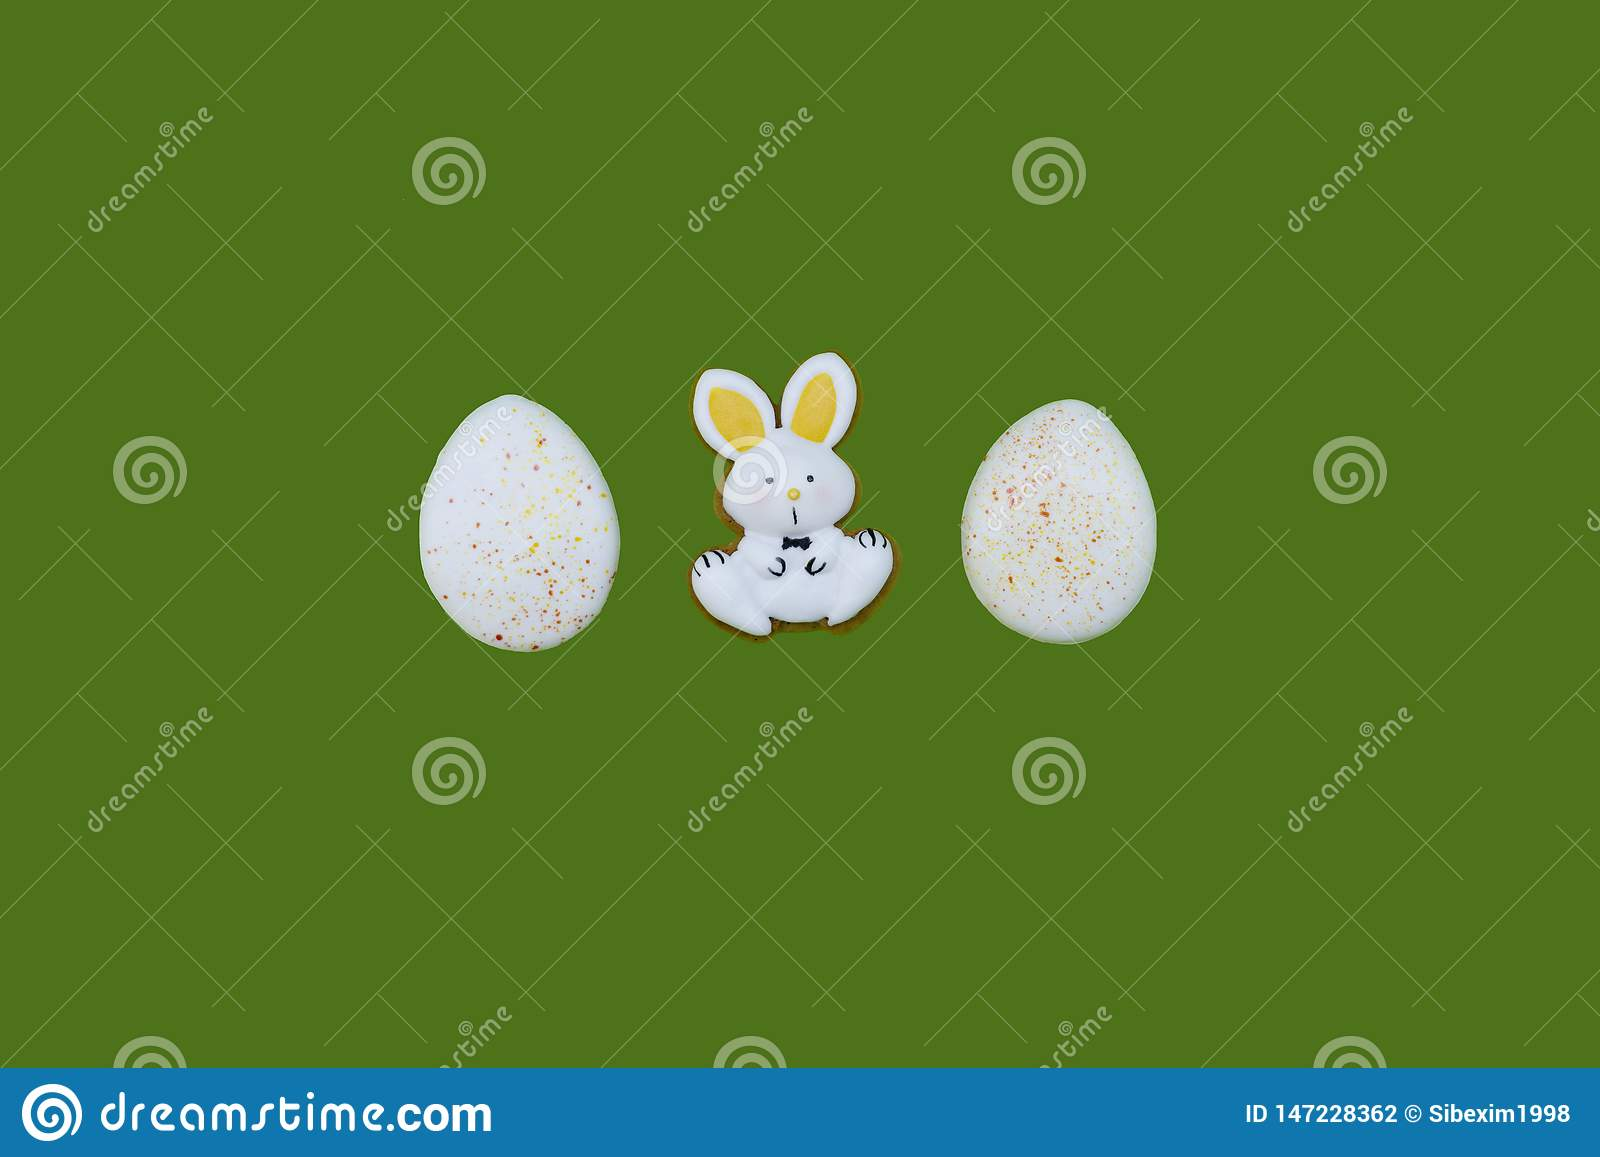 Easter gingerbreads as eggs and hares